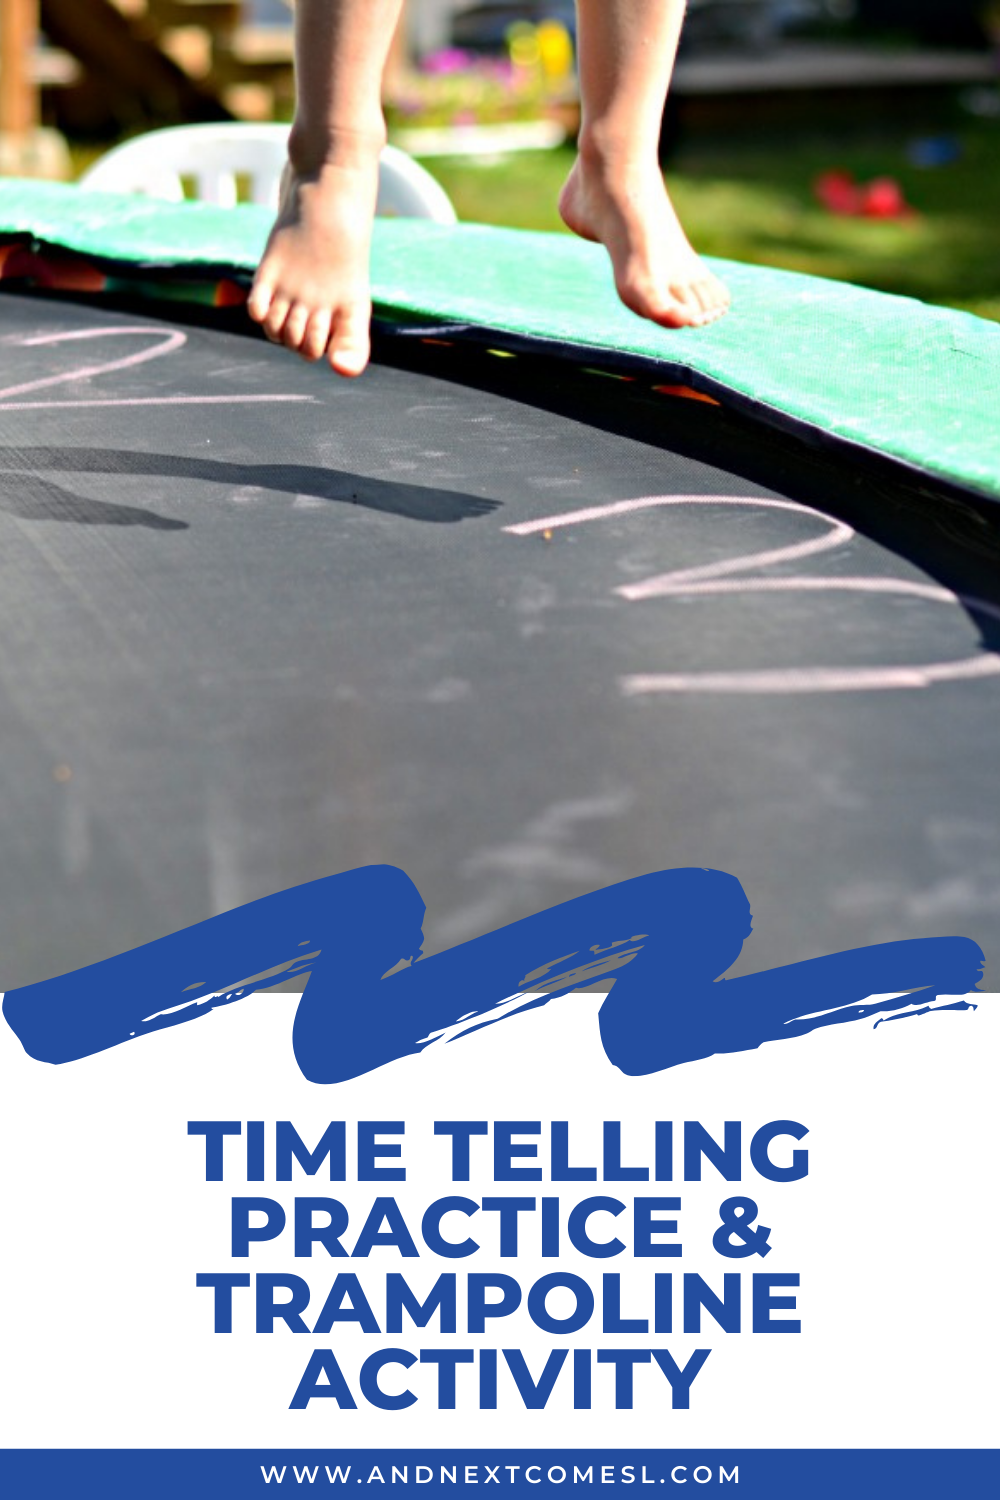 A fun gross motor trampoline clock activity for kids for time telling practice